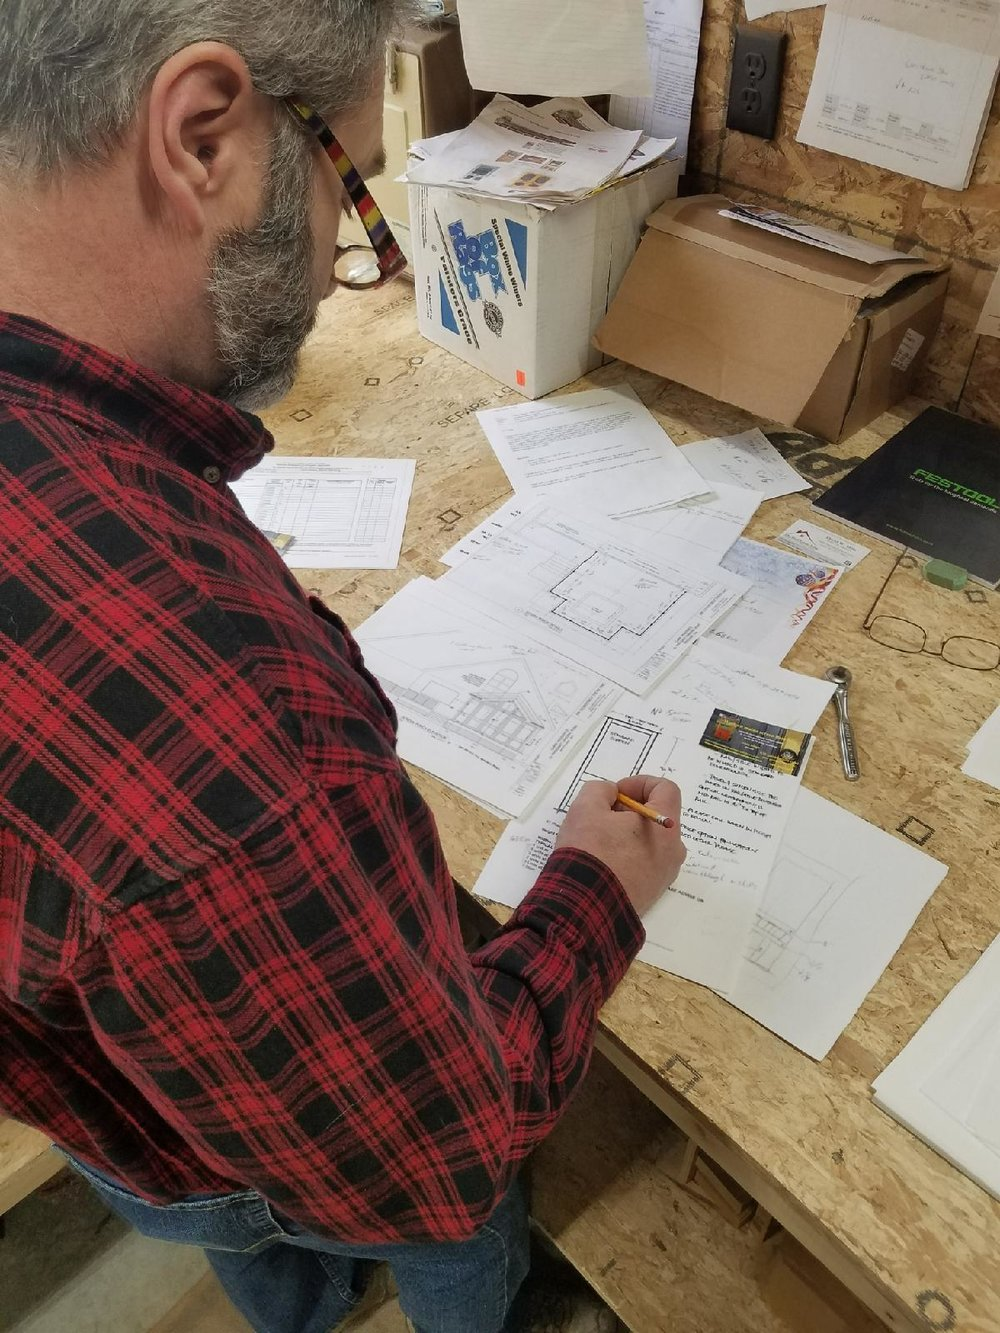 Craig Lehigh Prides himself in being a Master Craftsman and Building the Highest Quality Products to Meet all of your needs.